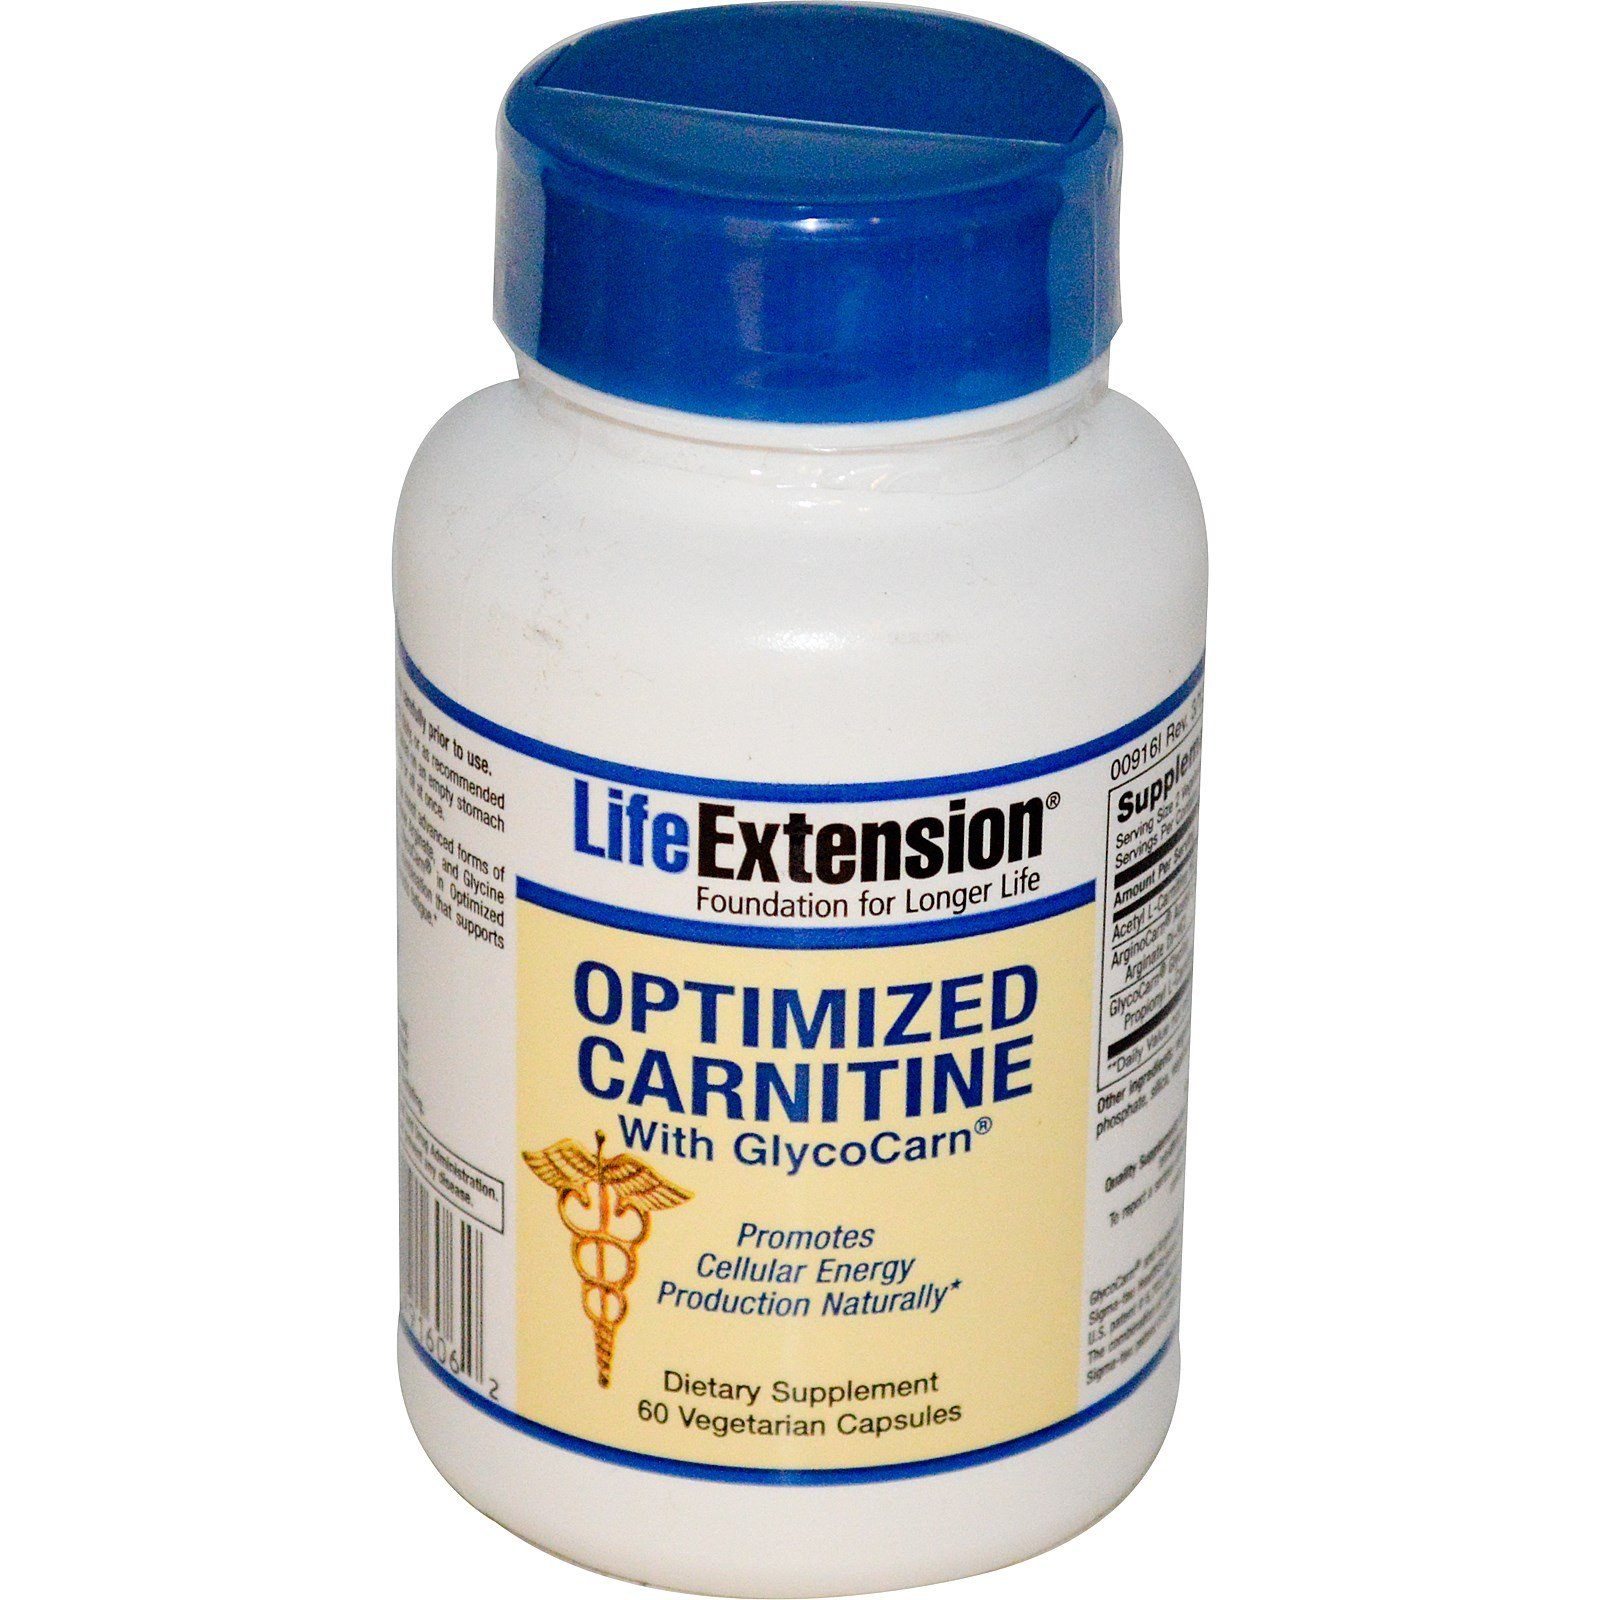 Life Extension, Optimized Carnitine, With GlycoCarn, 60 Veggie Caps - 2pc